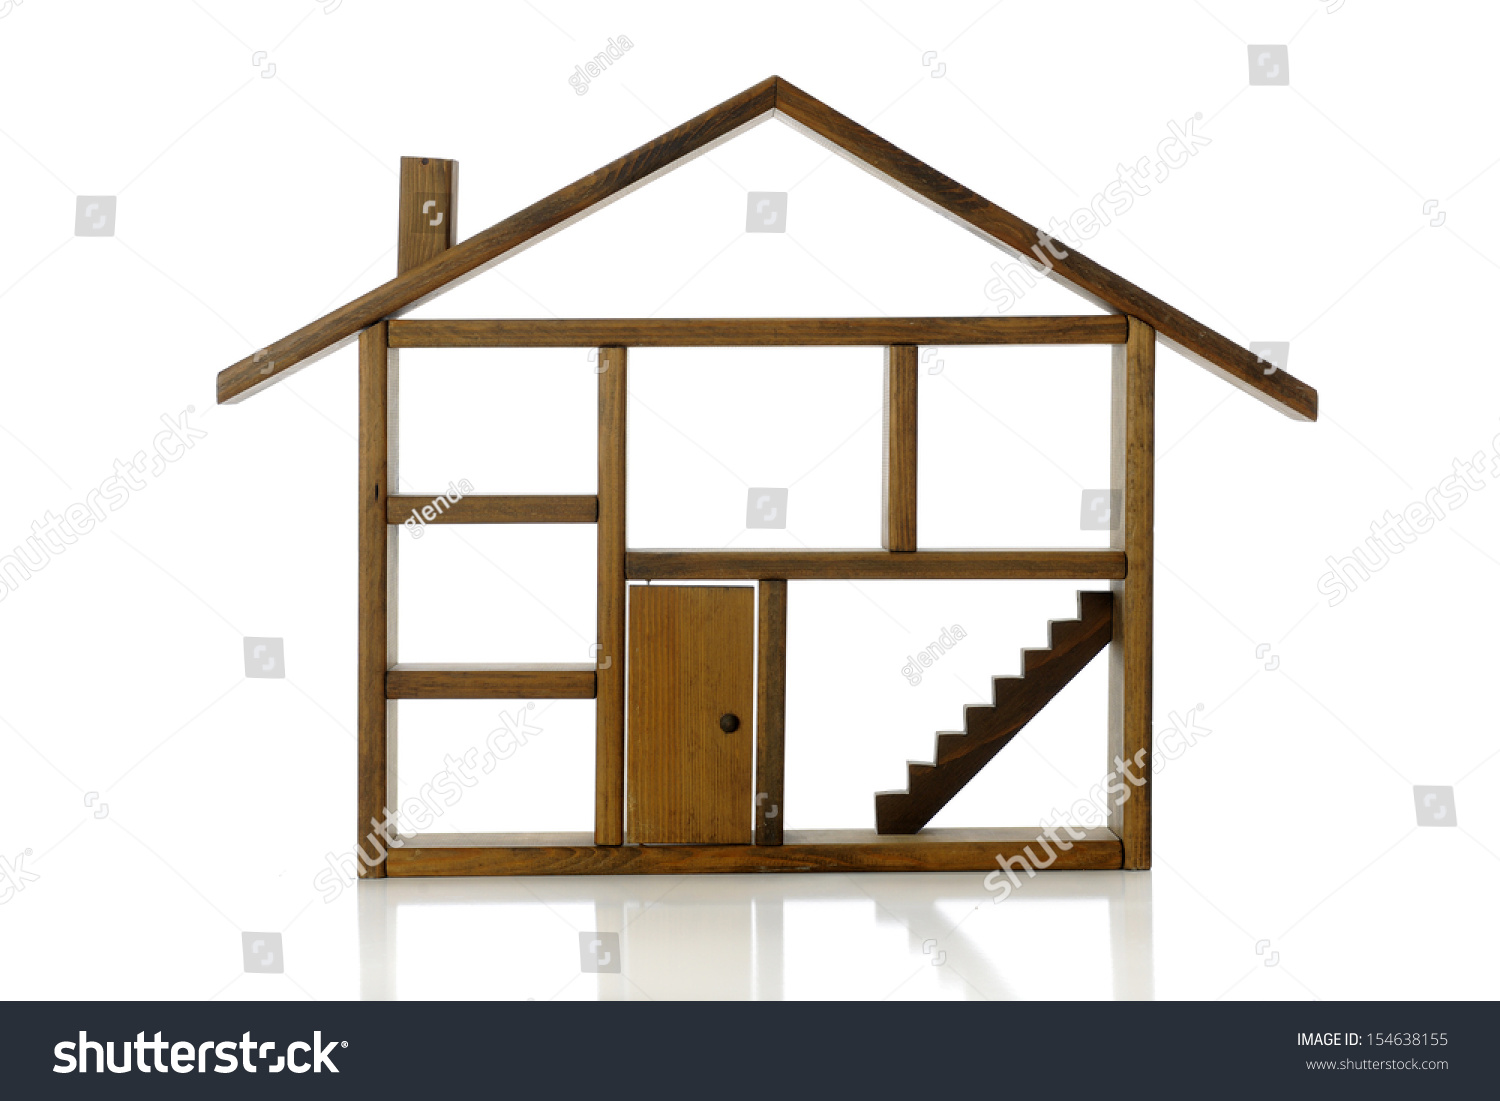 House outline with rooms - A Wooden Outline Of A House Showing Rooms Chimney Stairs And A Closed Front